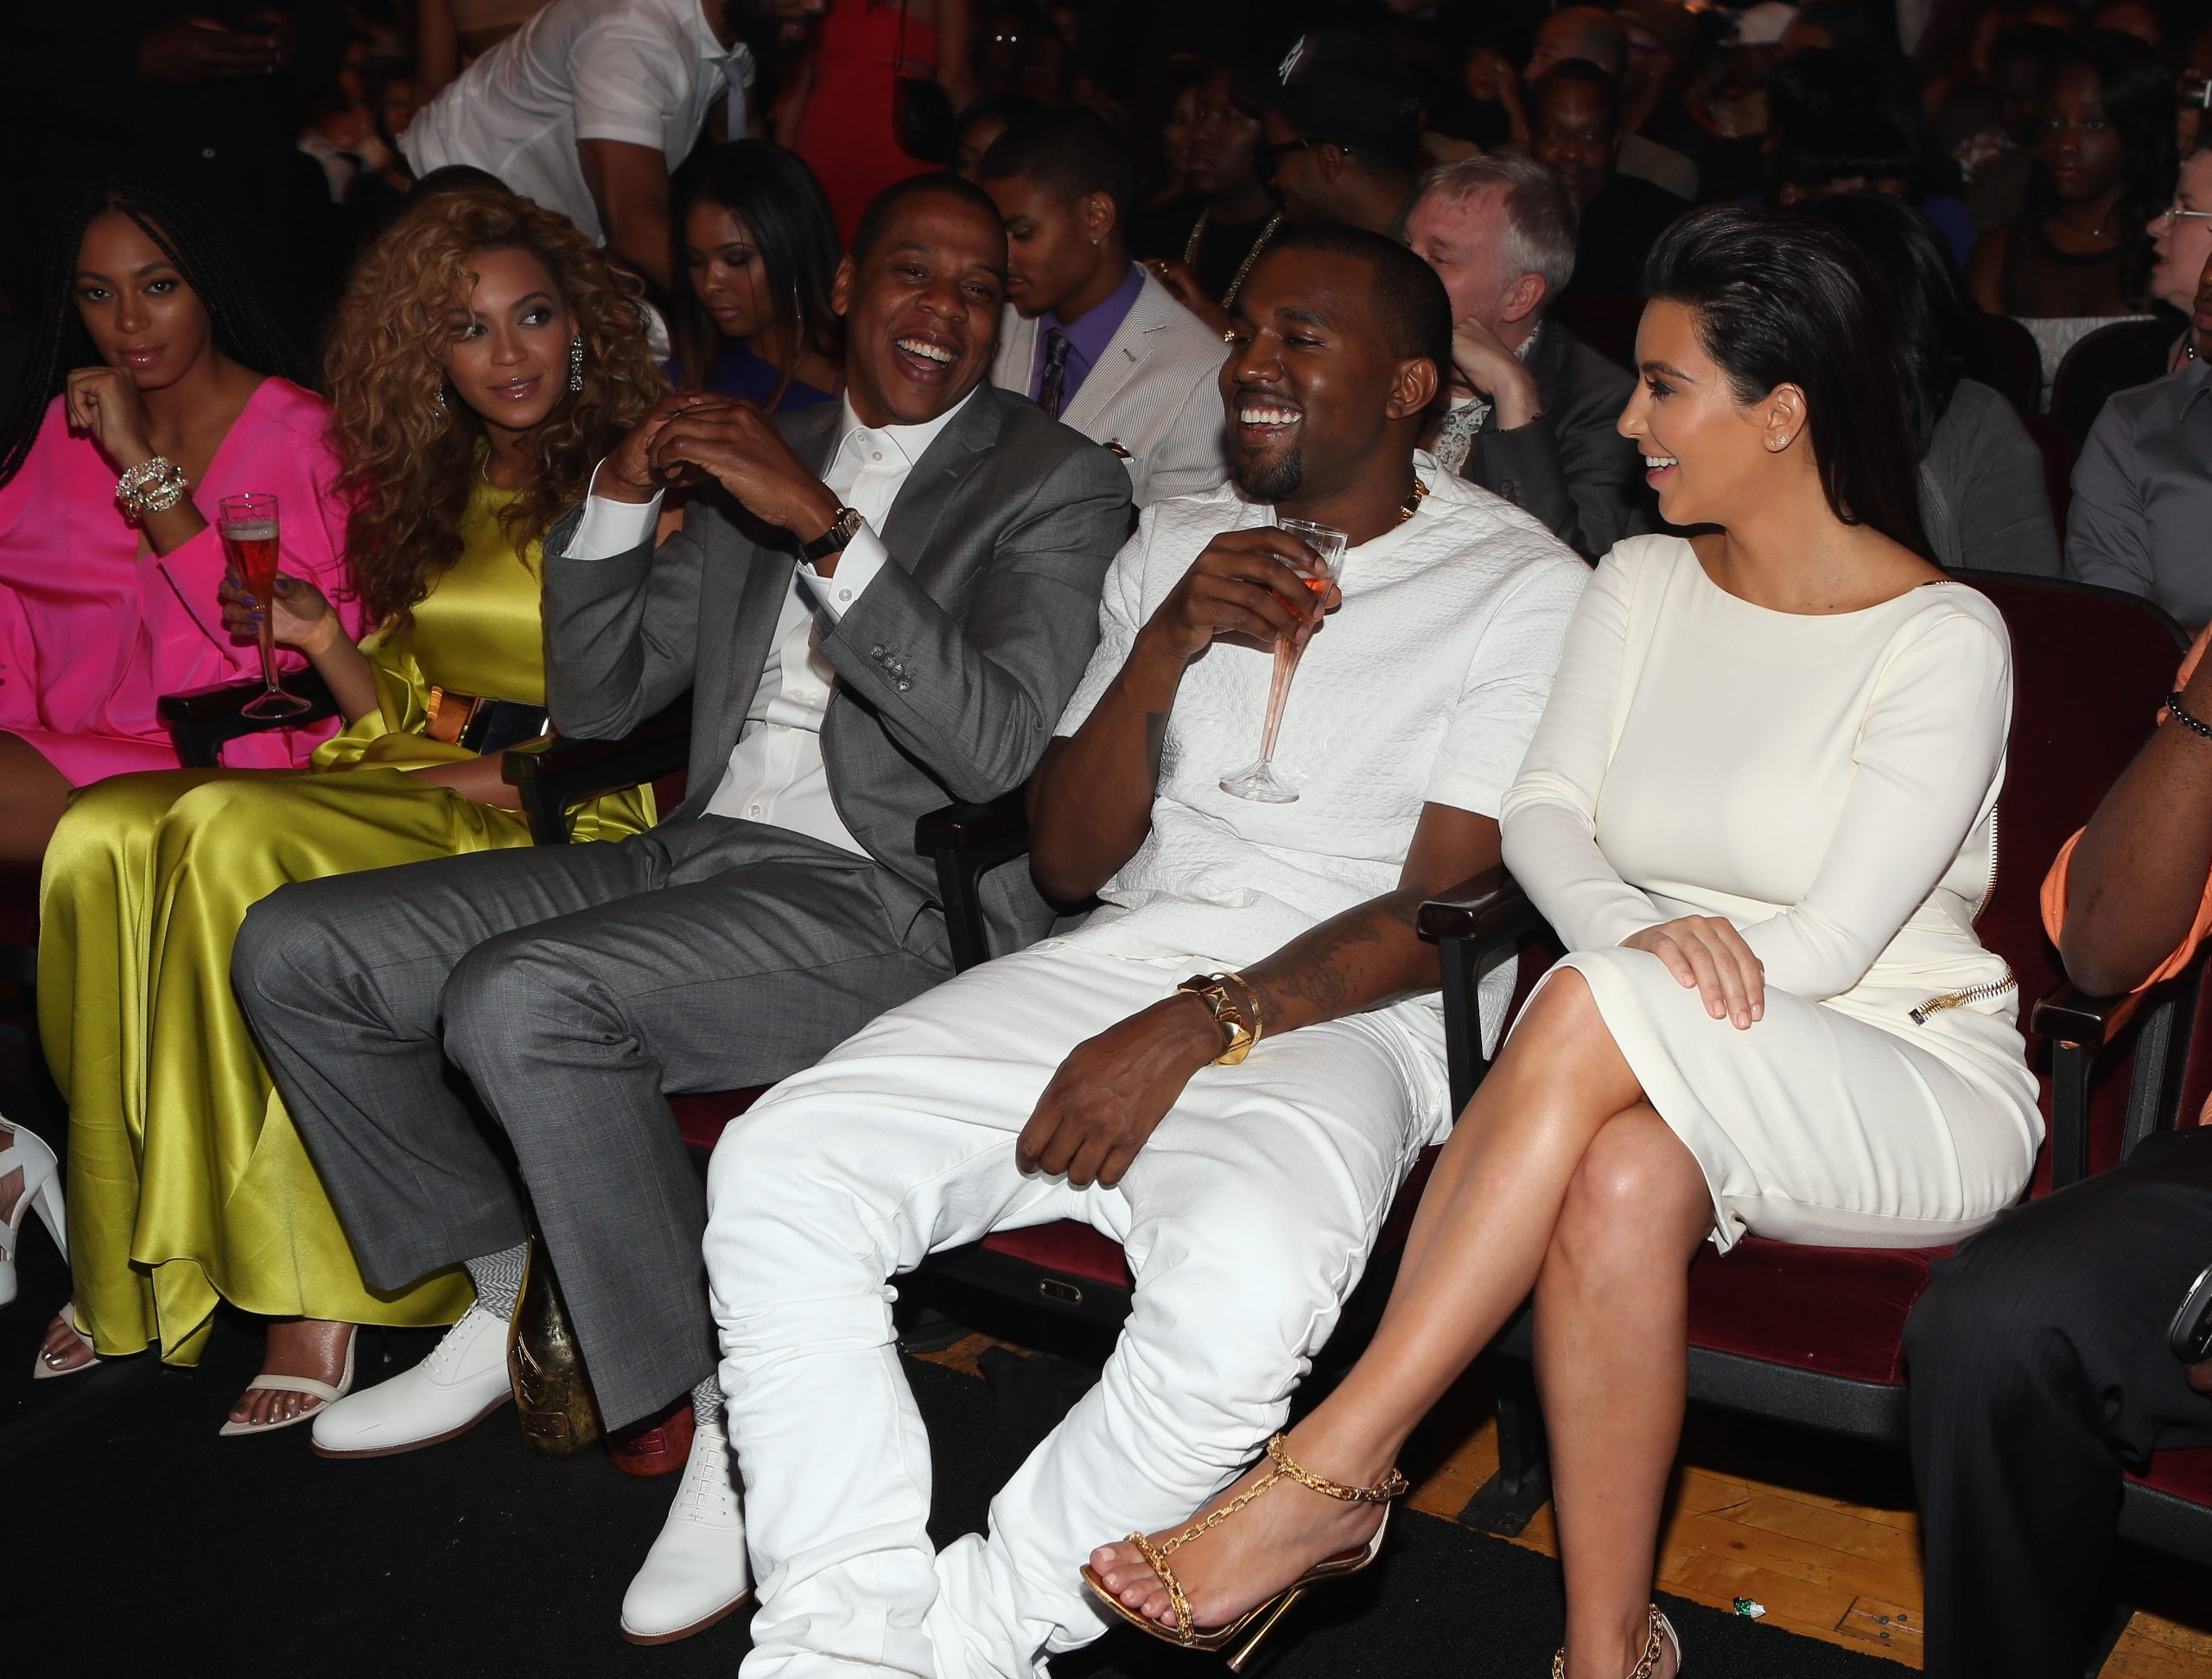 Beyoncé, Jay-Z, Kanye West, and Kim Kardashian West